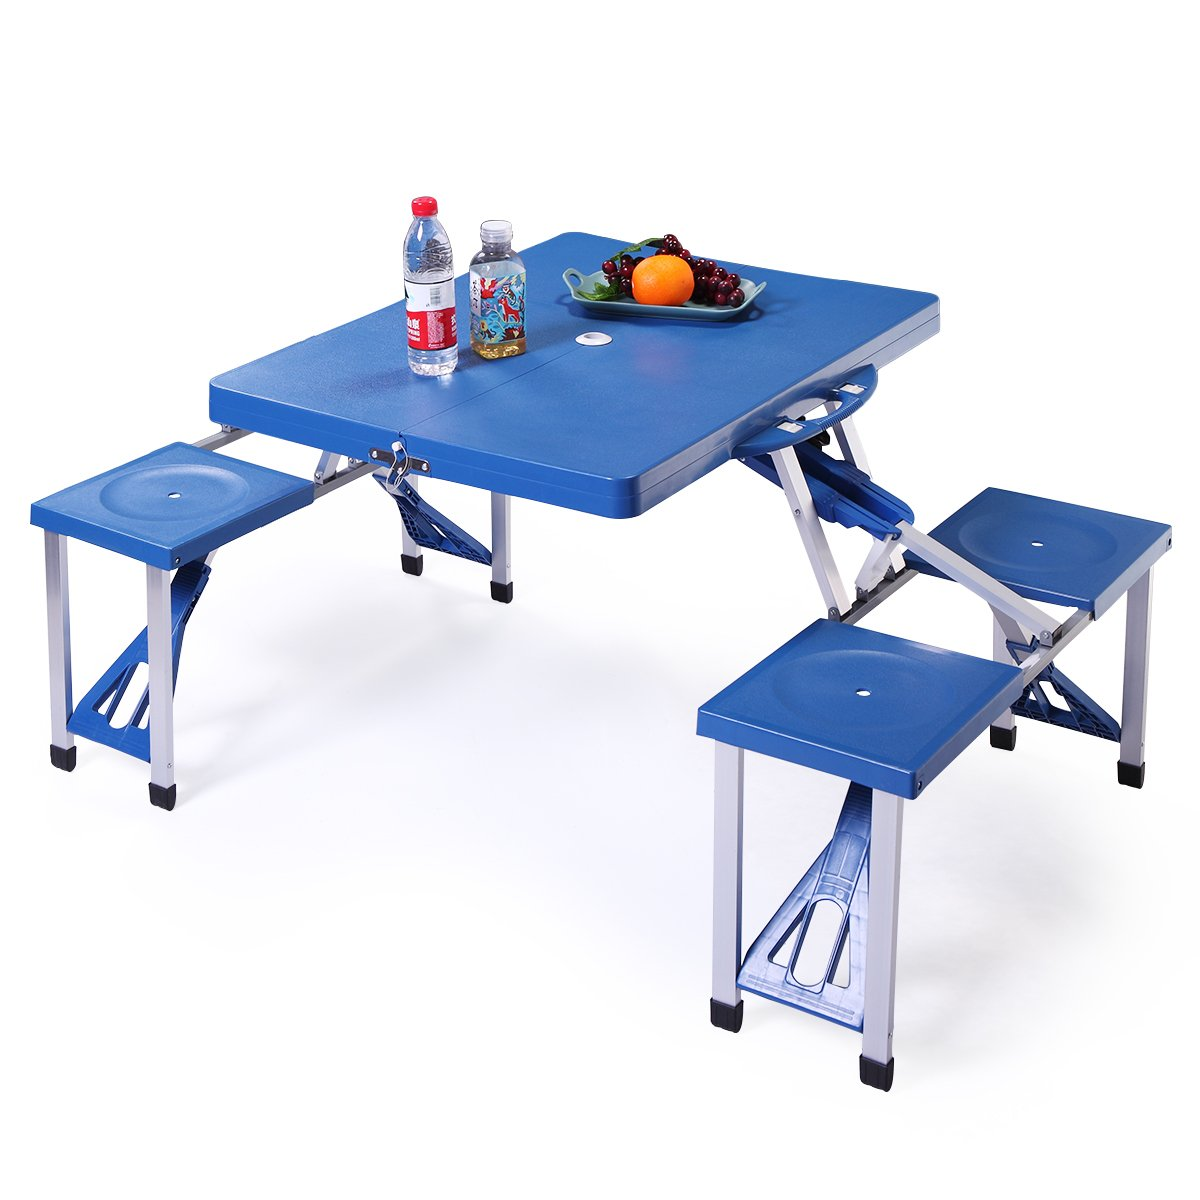 JAXPETY Portable Folding Plastic Camping Picnic Table 4 Seats Outdoor Garden W/Case Blue